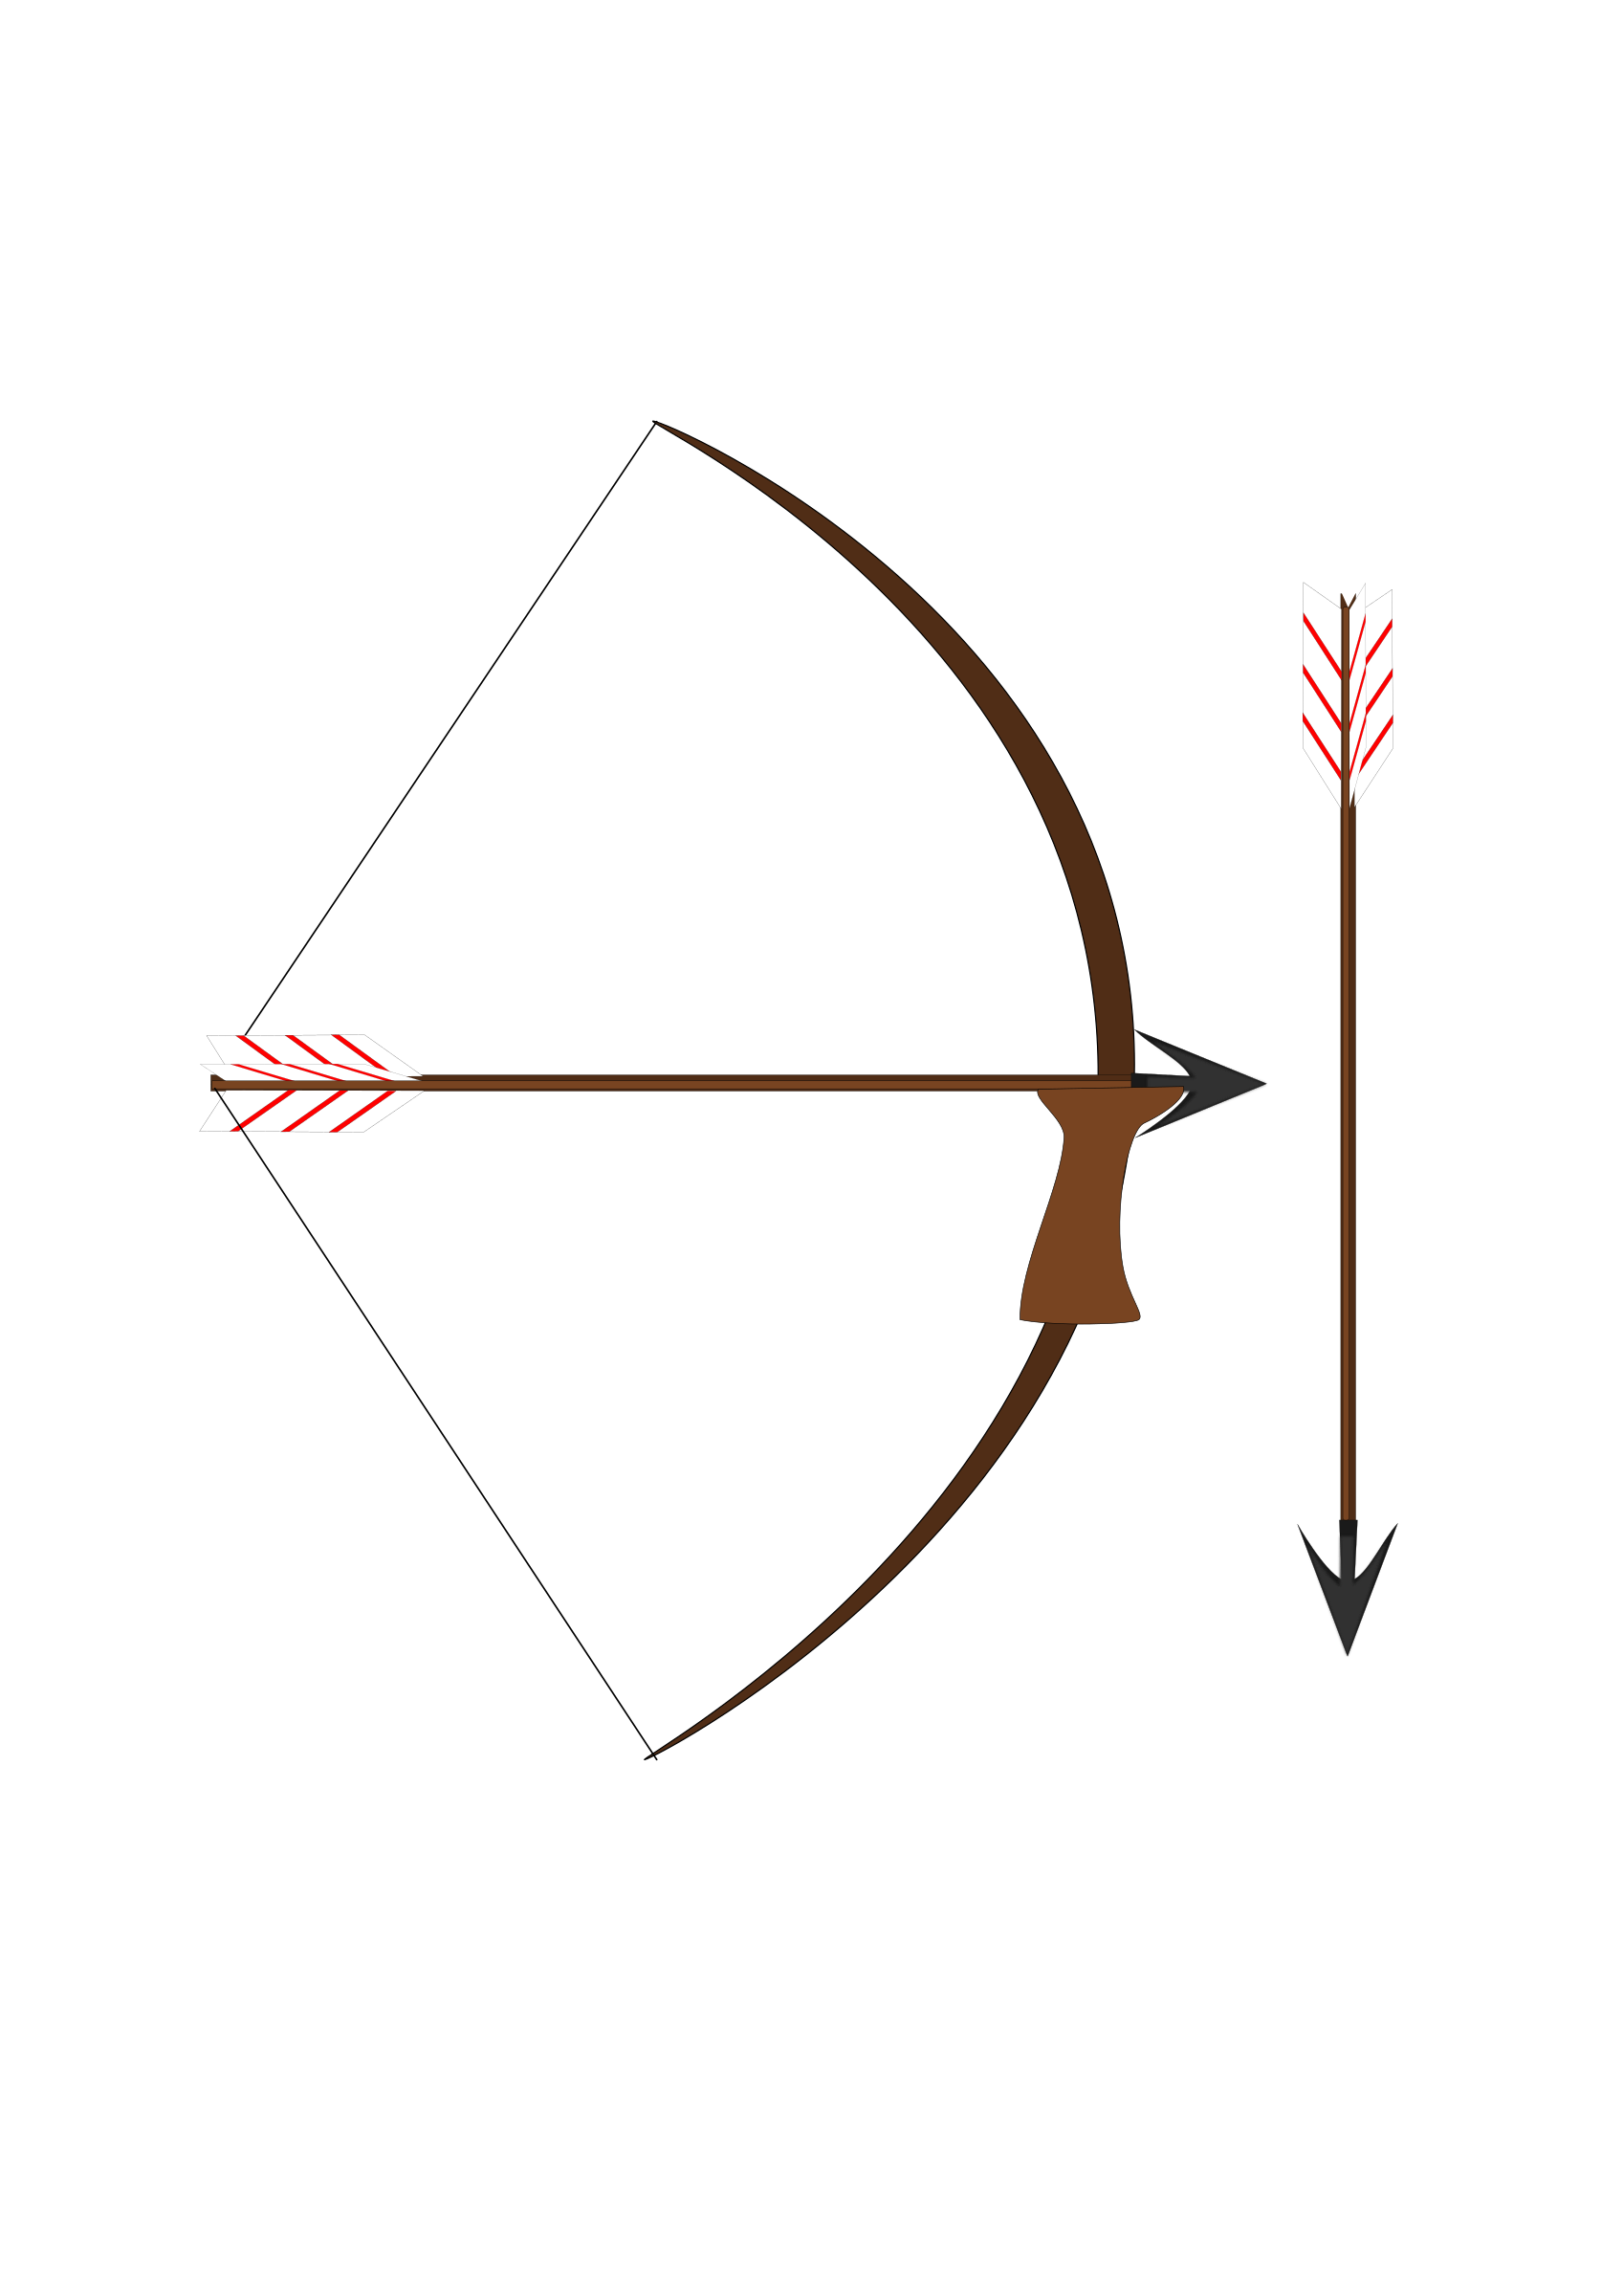 Bow and arrow images clip art image freeuse Clipart - Bow and arrow image freeuse